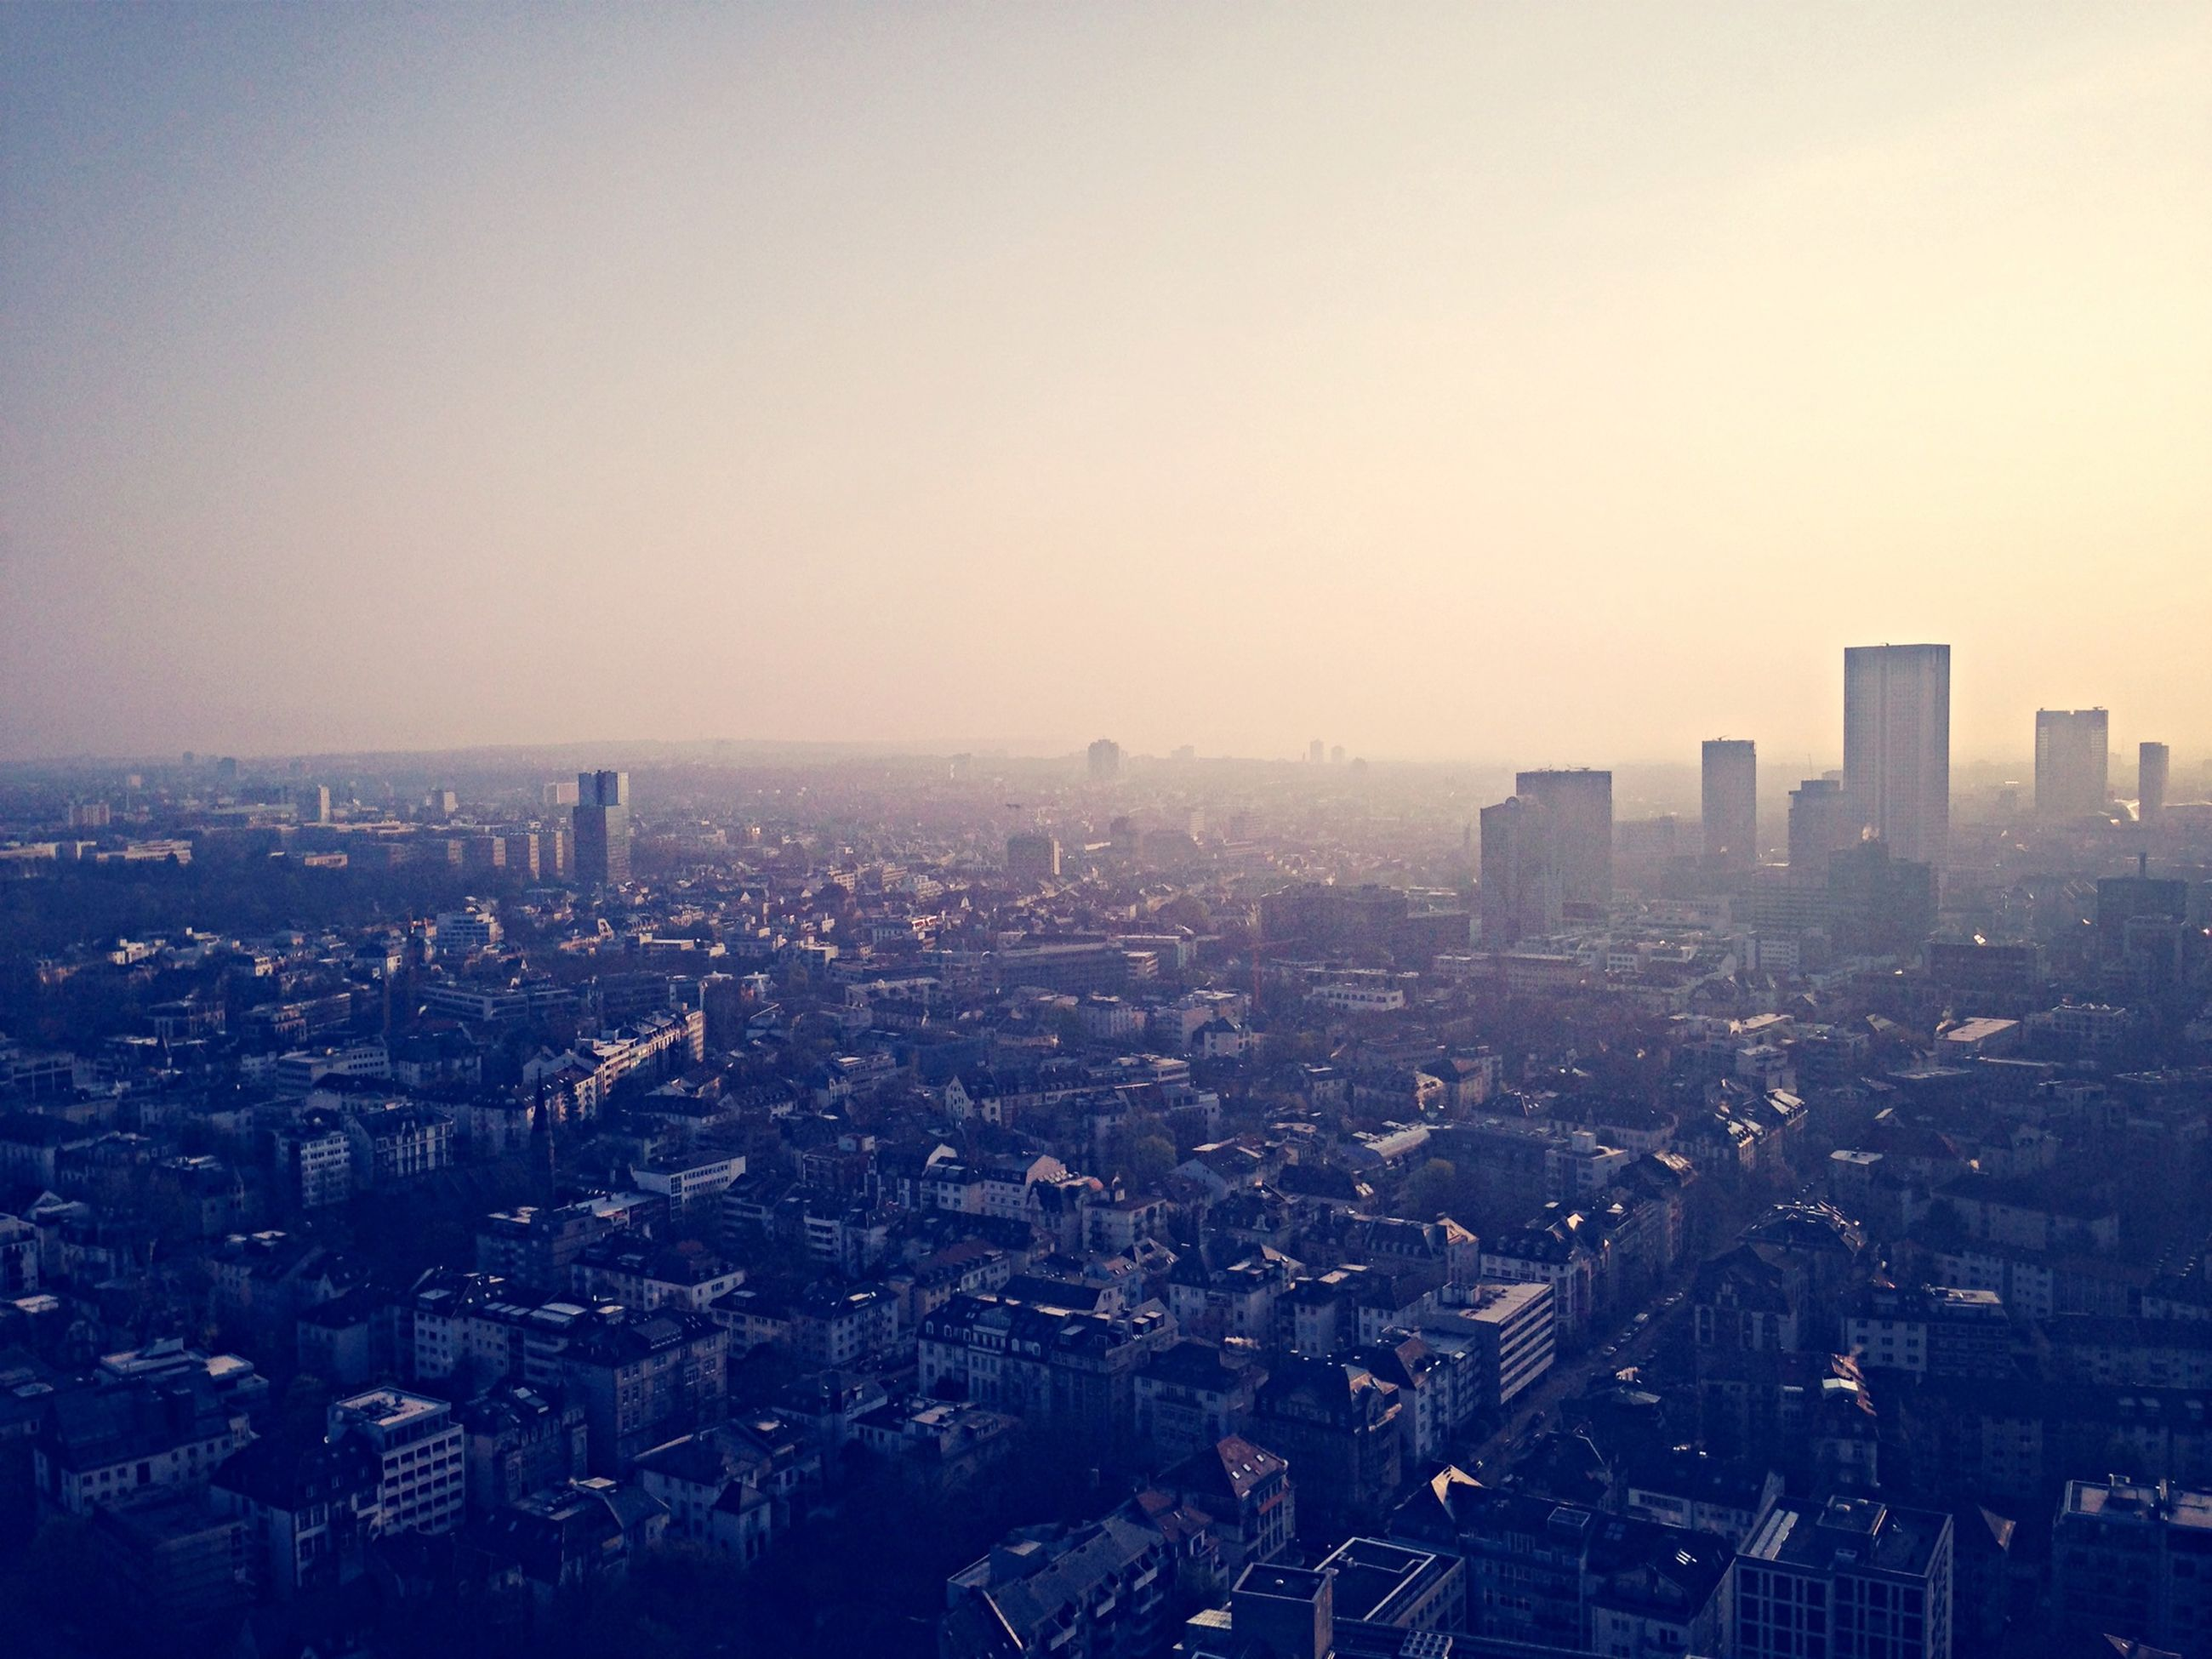 cityscape, city, building exterior, architecture, built structure, clear sky, crowded, copy space, high angle view, residential district, residential building, residential structure, city life, skyscraper, aerial view, sky, outdoors, sunset, no people, dusk